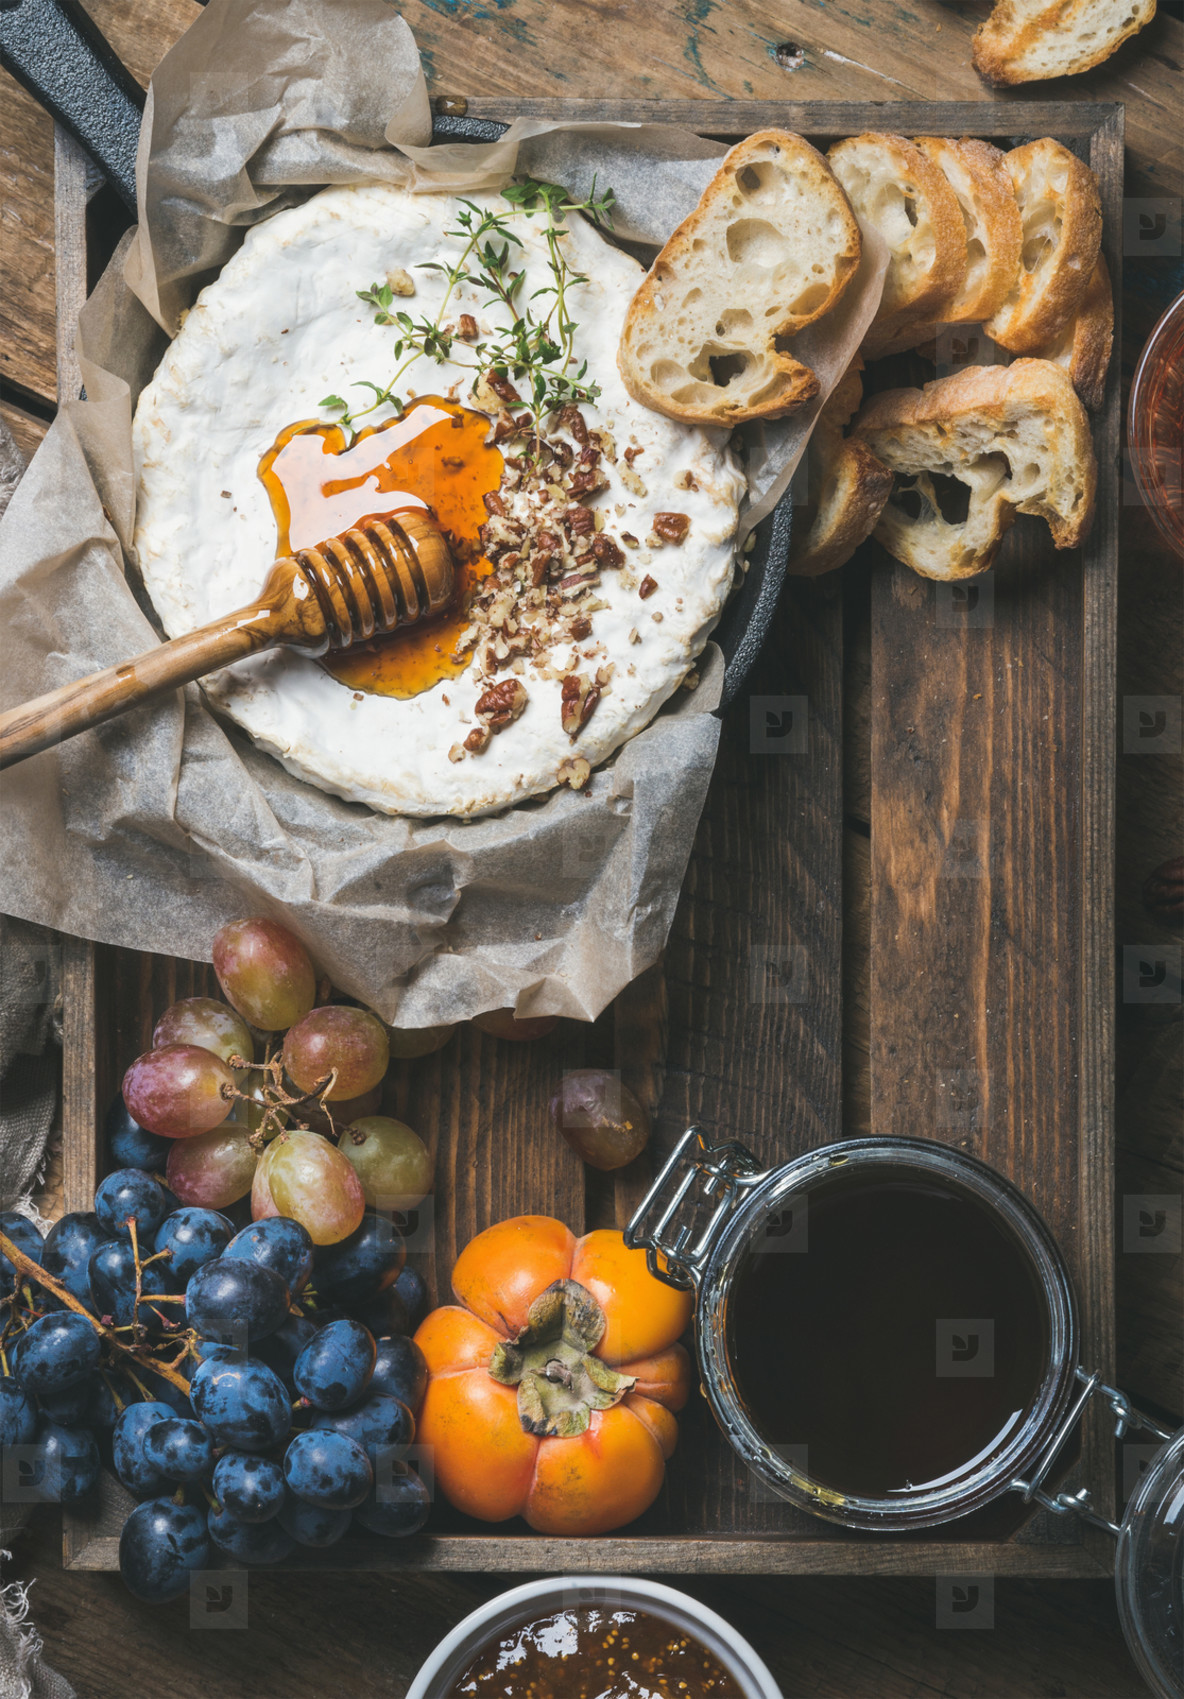 Cheese  fruit and wine set over wooden background  copy space